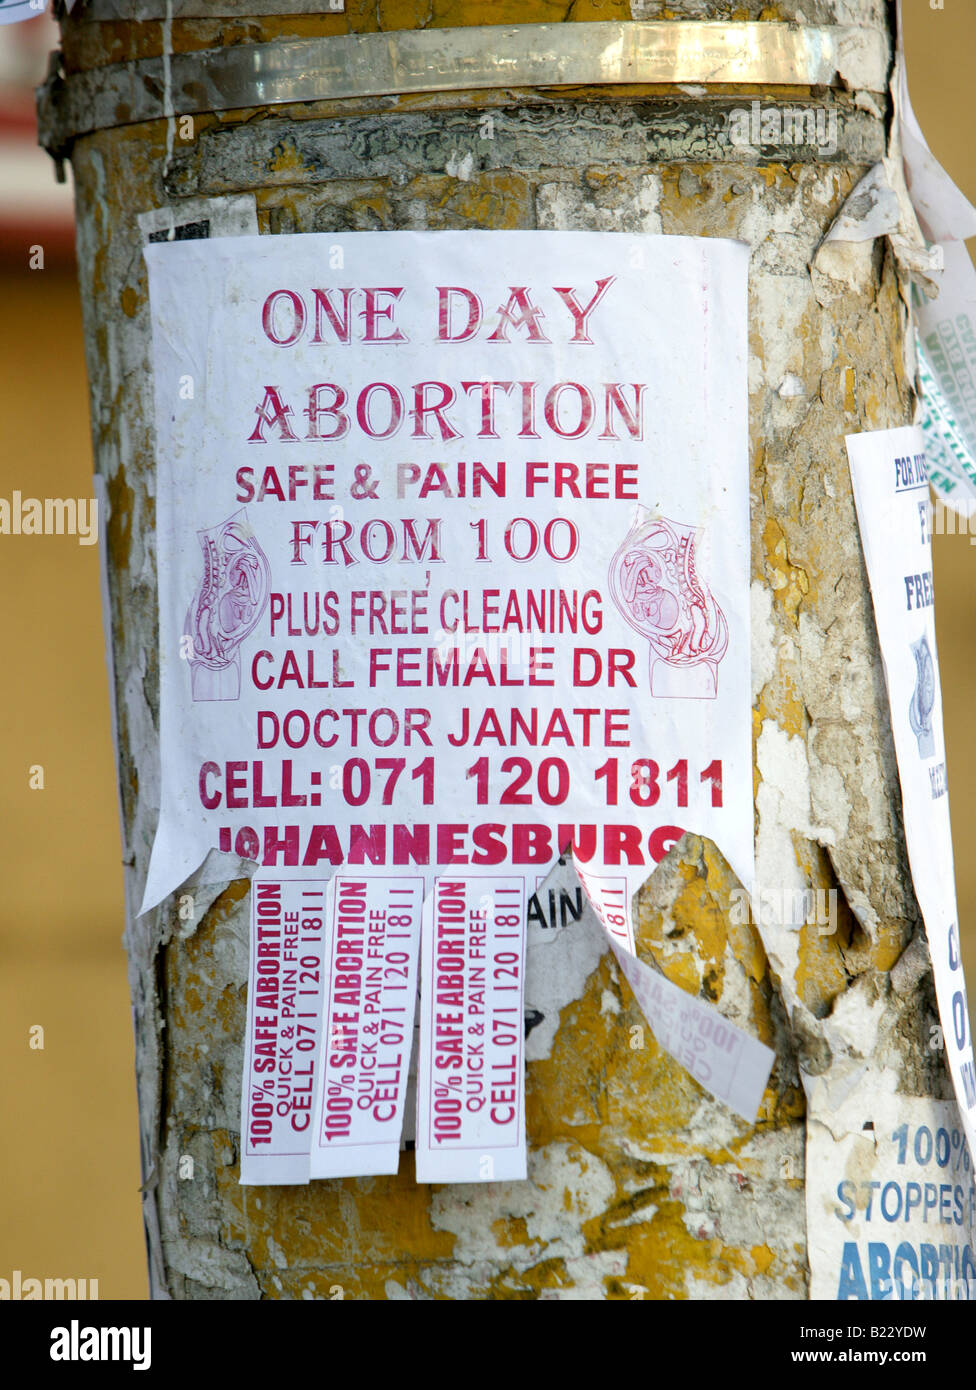 South Africa: leaflet on a tree in Johannesburg promoting reasonable abortion from 100 RAND (approximately 9,00 - Stock Image